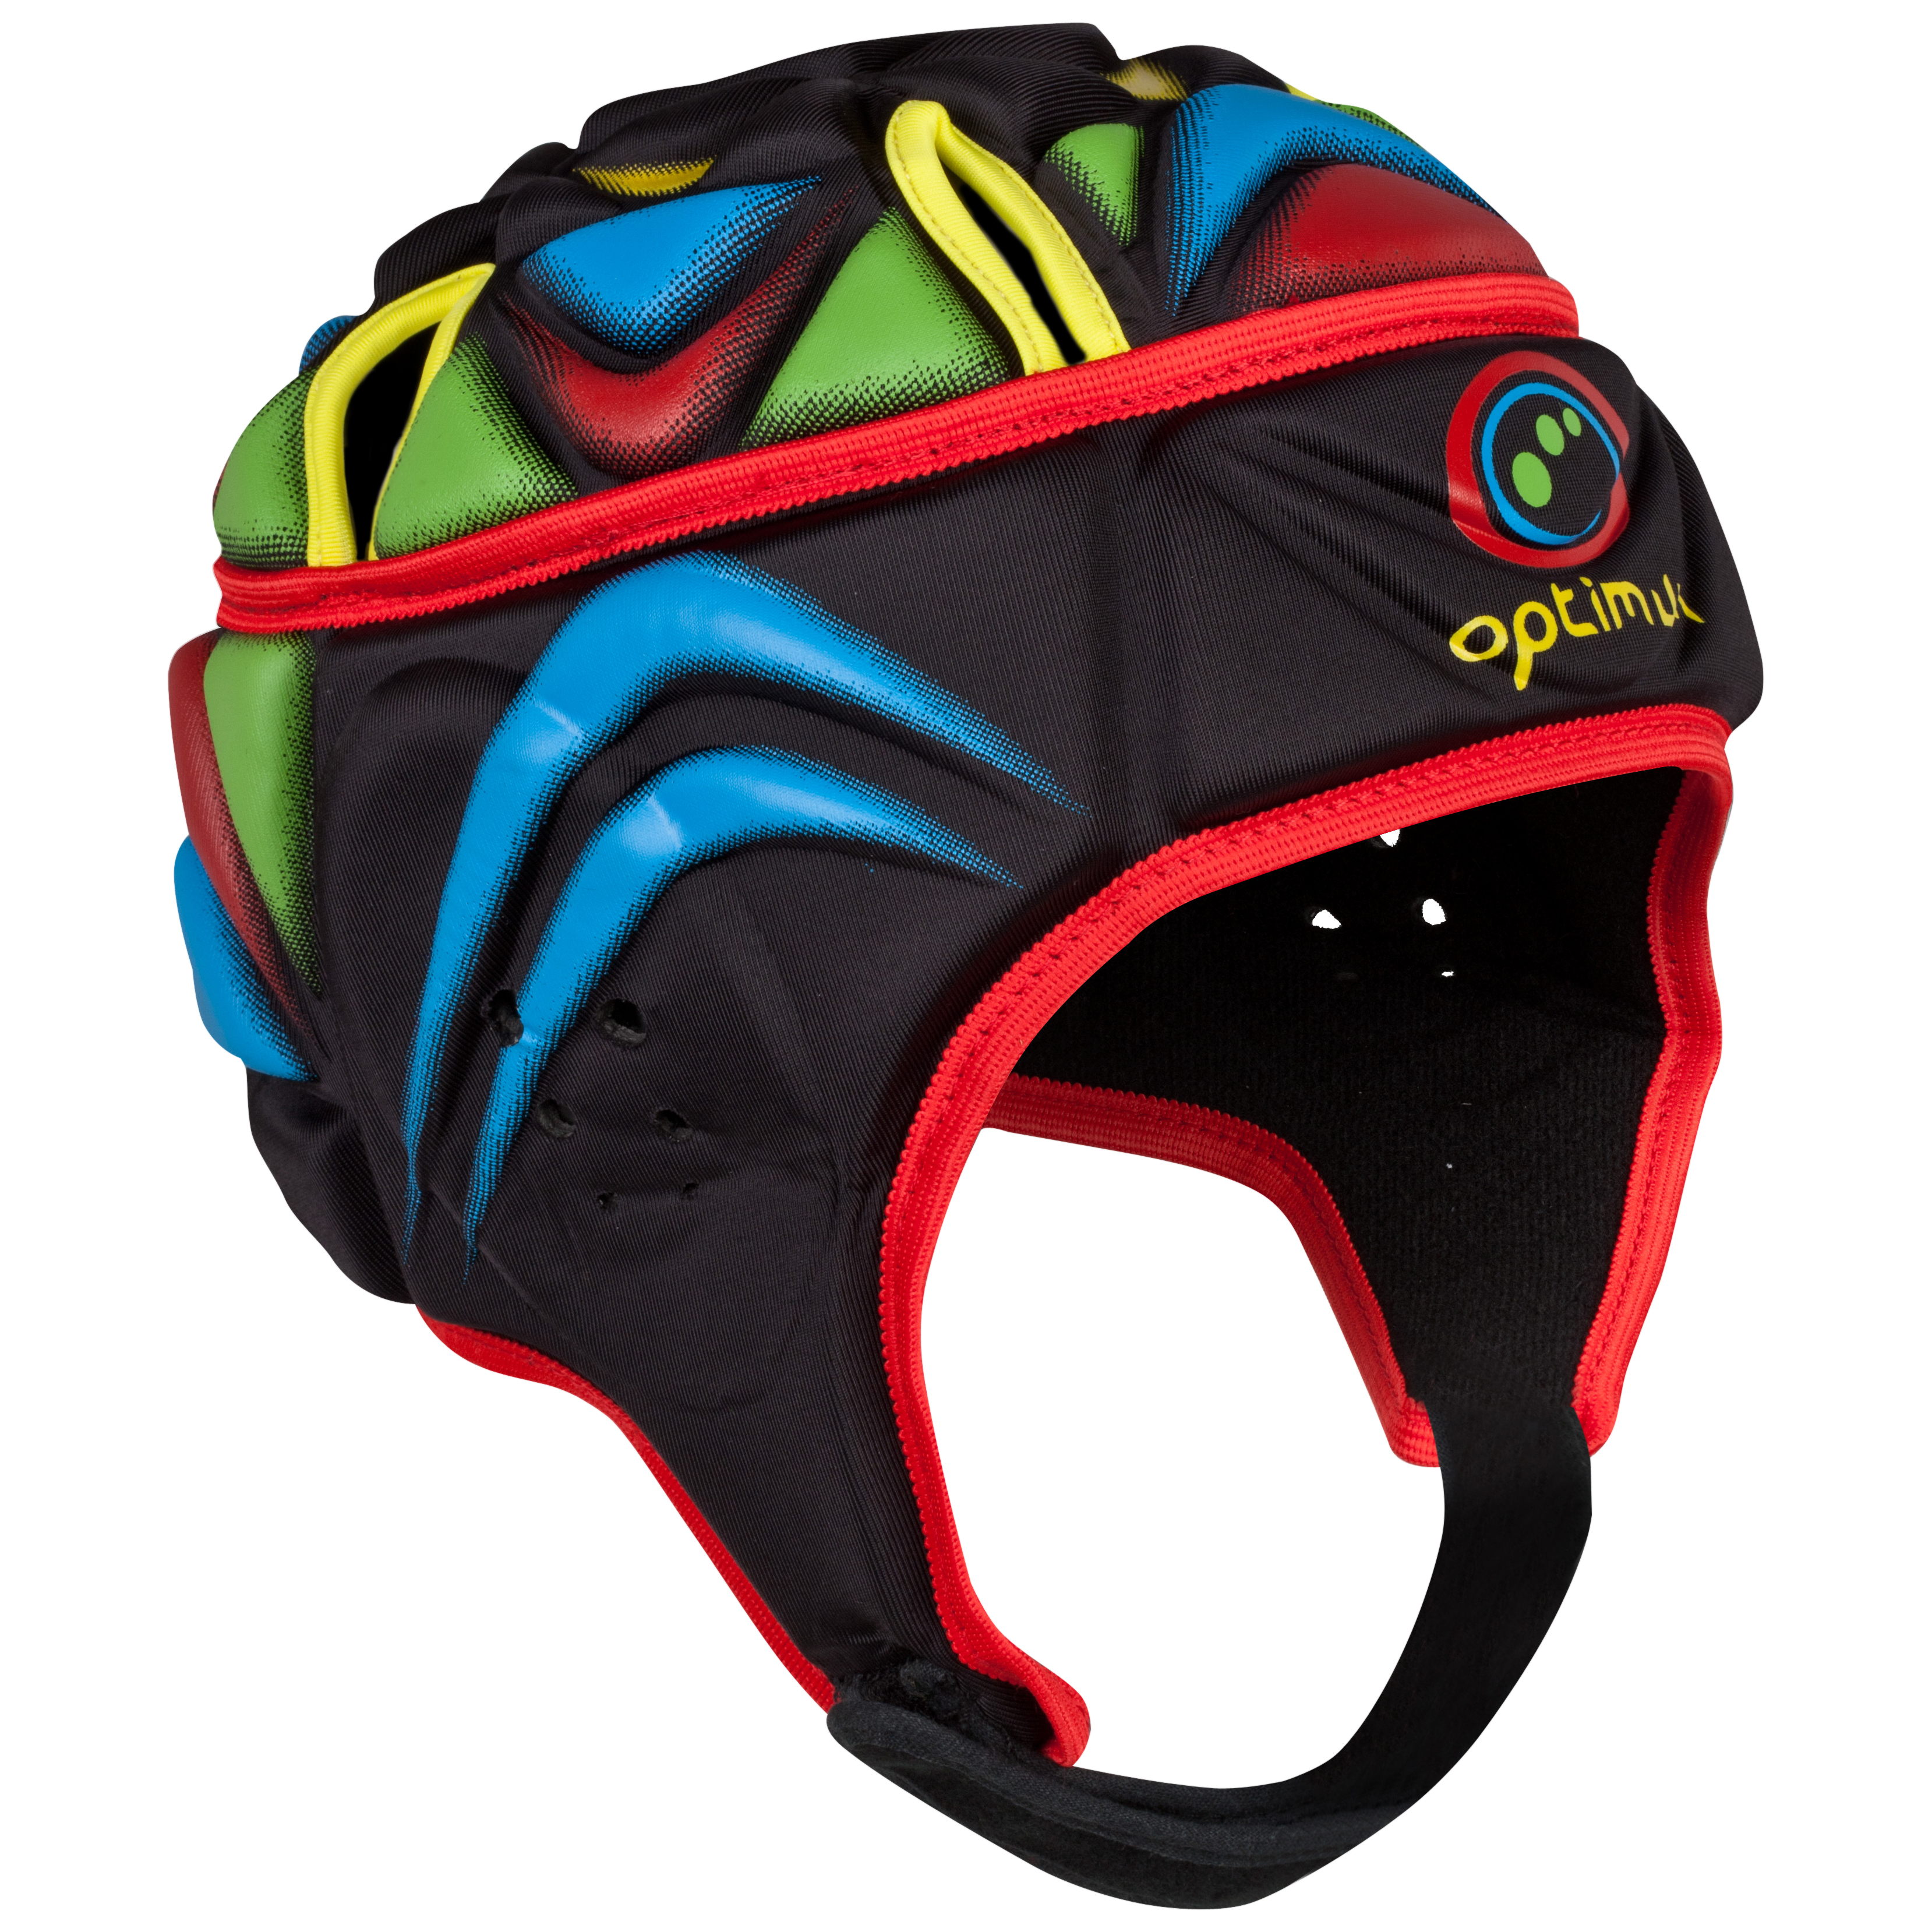 Optimum Extreme Headguard - Bokka